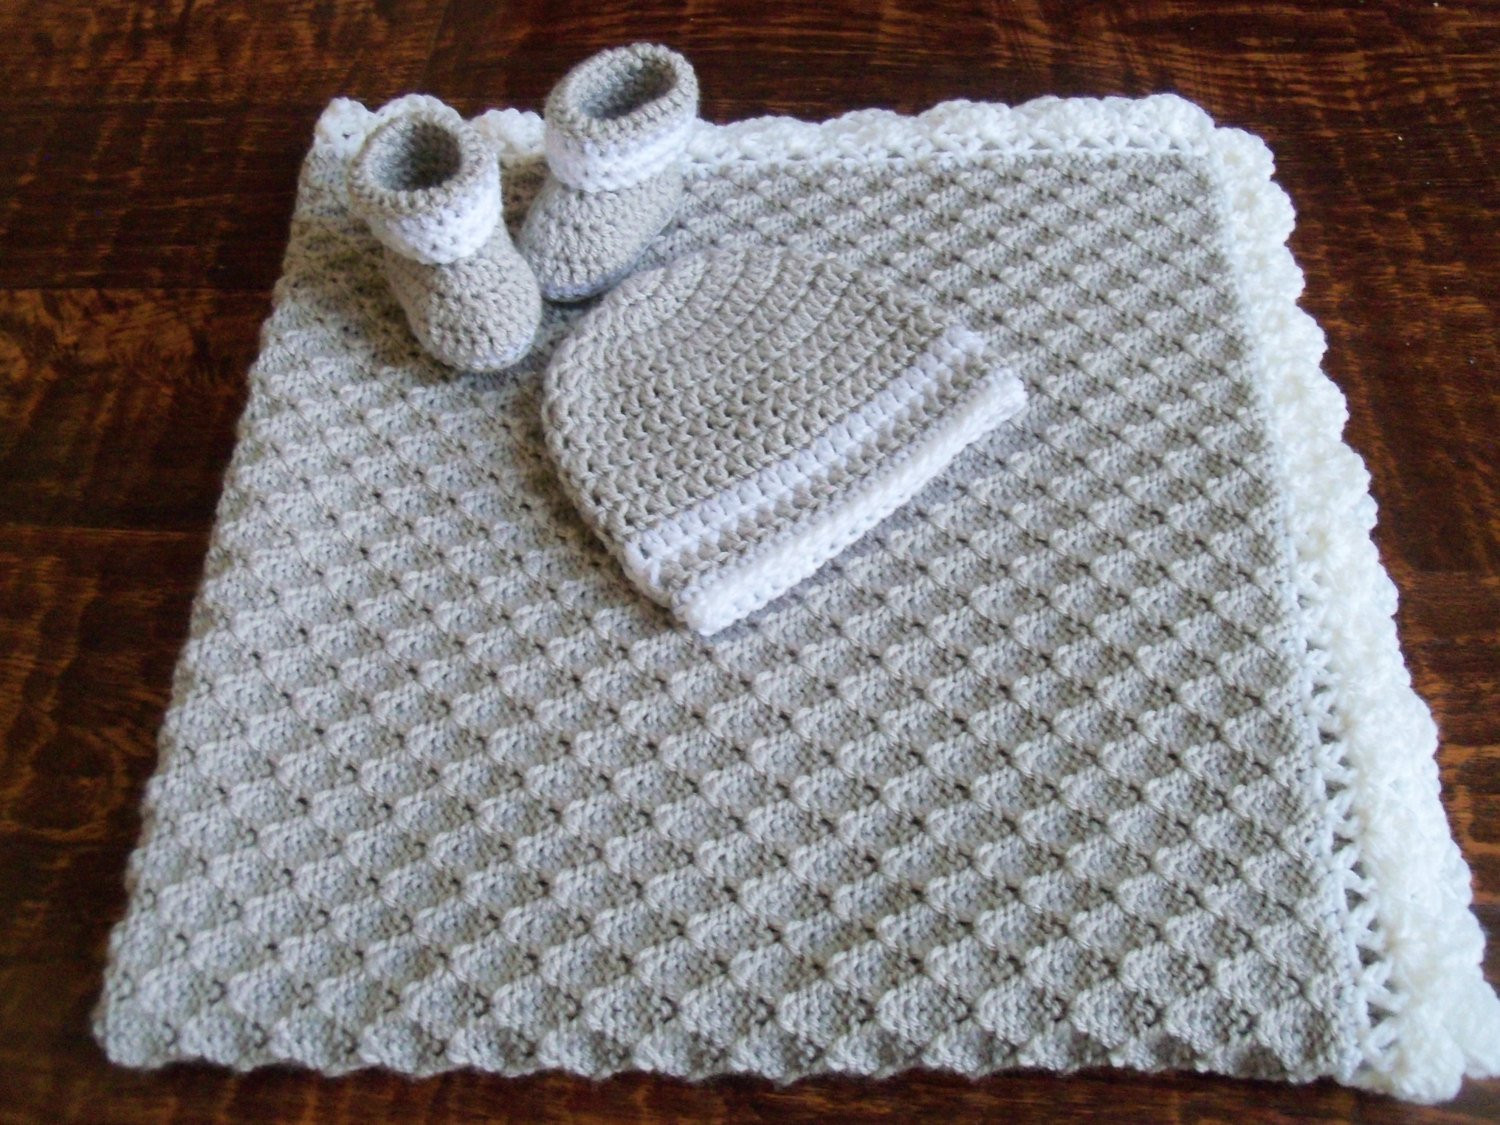 Baby Boy Knitted Blanket Inspirational Knit Crochet Personalized Baby Boy Blanket Hat and Booties Of Incredible 43 Photos Baby Boy Knitted Blanket